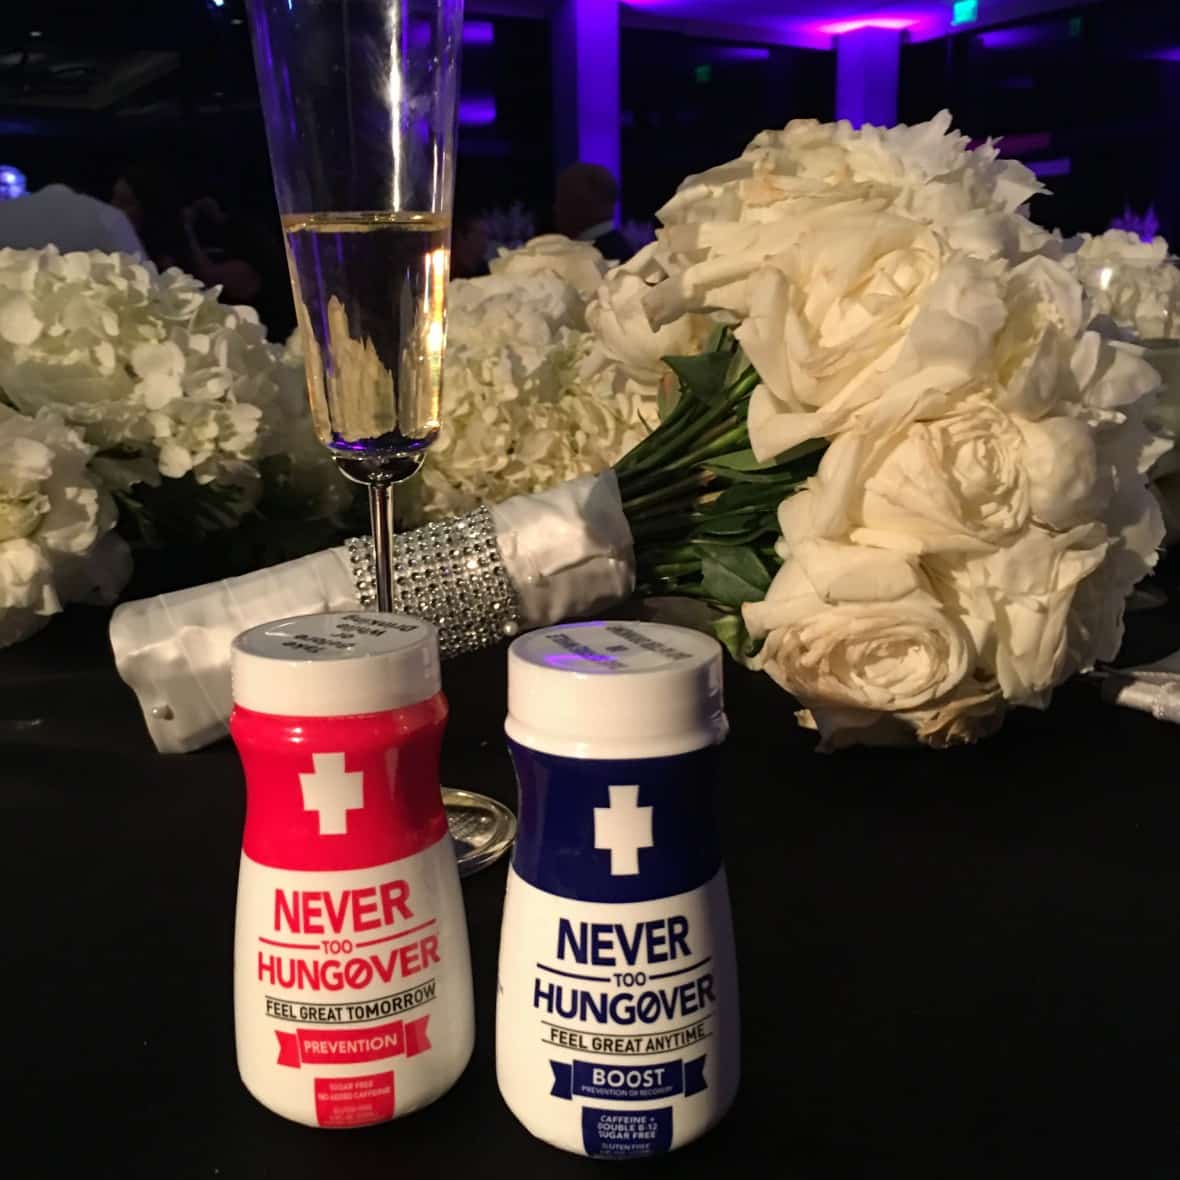 Prevent Wedding Hangovers with Never too Hungover